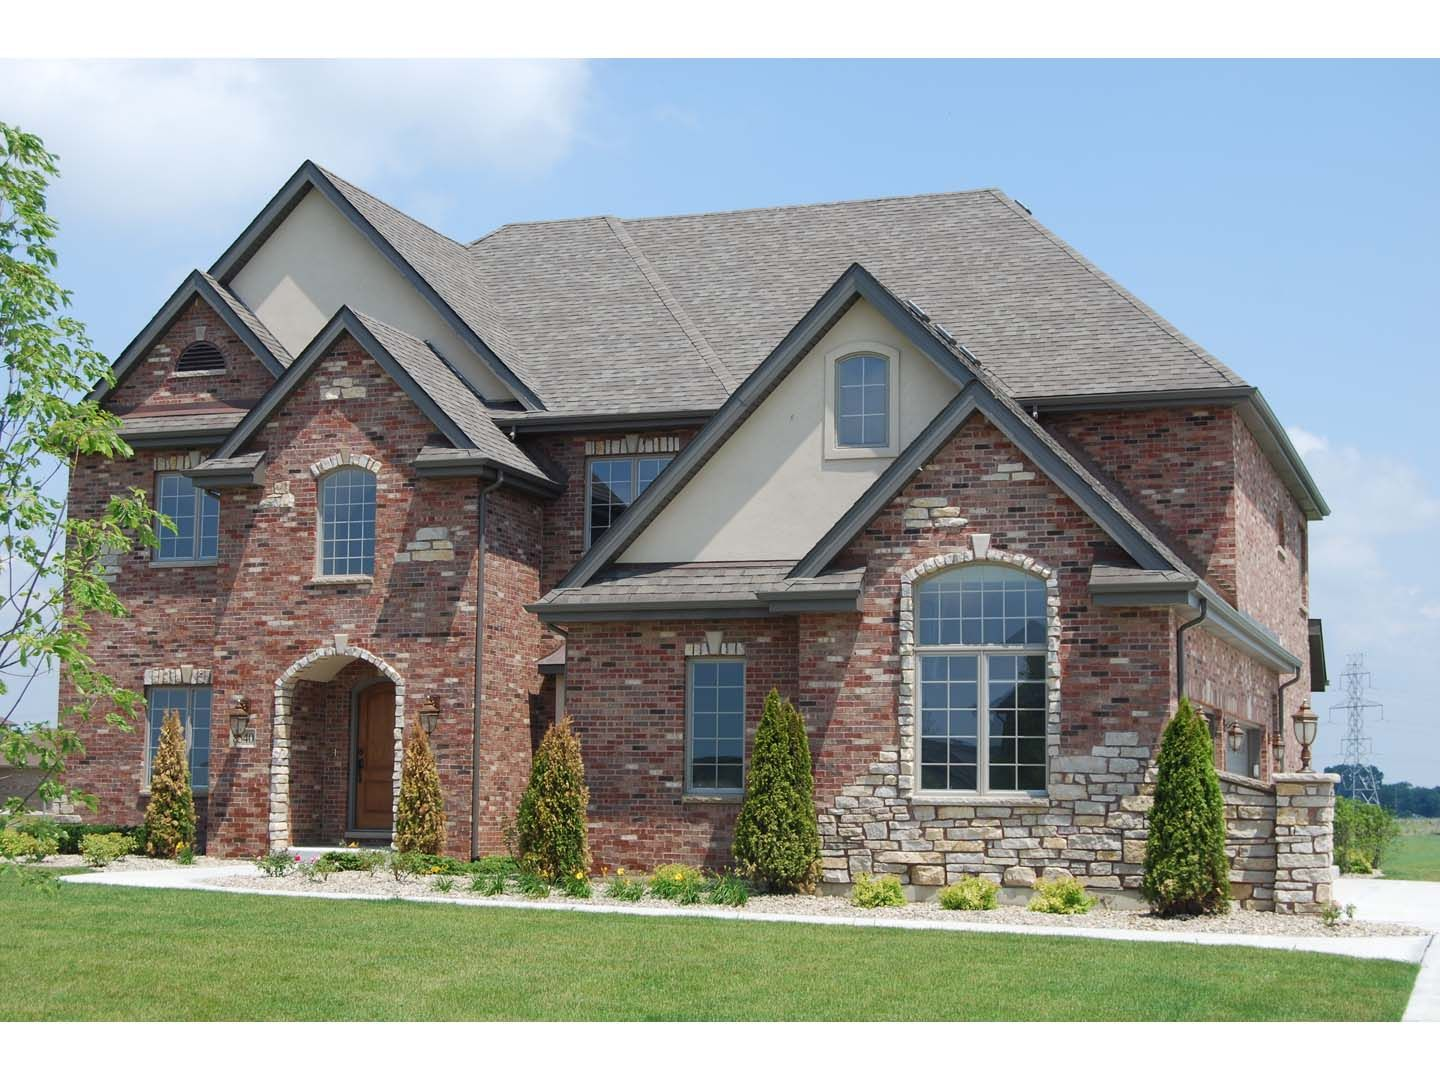 grey stone and stucco exterior houses - Google Search | Outside ...